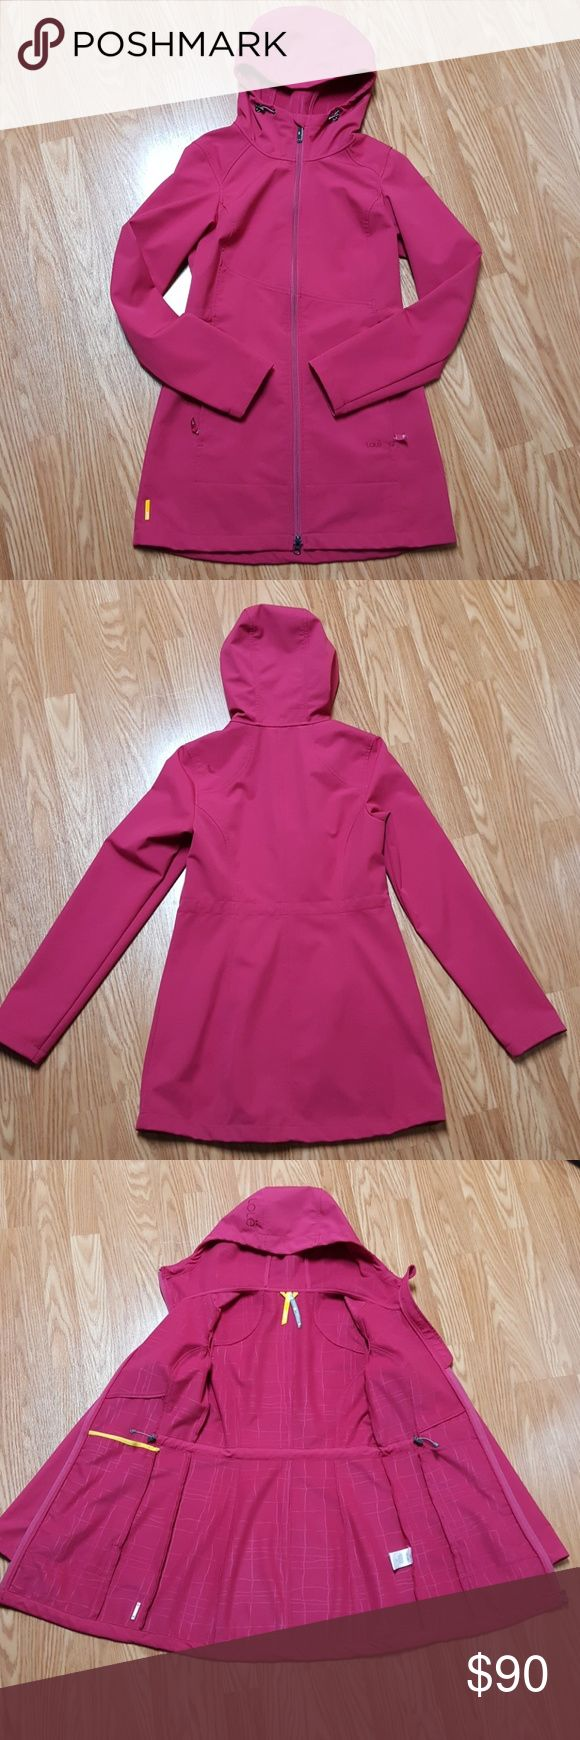 Lole softshell jacket Lole softshell jacket. Excellent used condition, barely worn. Water repellent, soft fleece lining, cinchable waistline and hood. Very flattering. Size Small (4-6). Pink. Thigh length. Lole Jackets & Coats